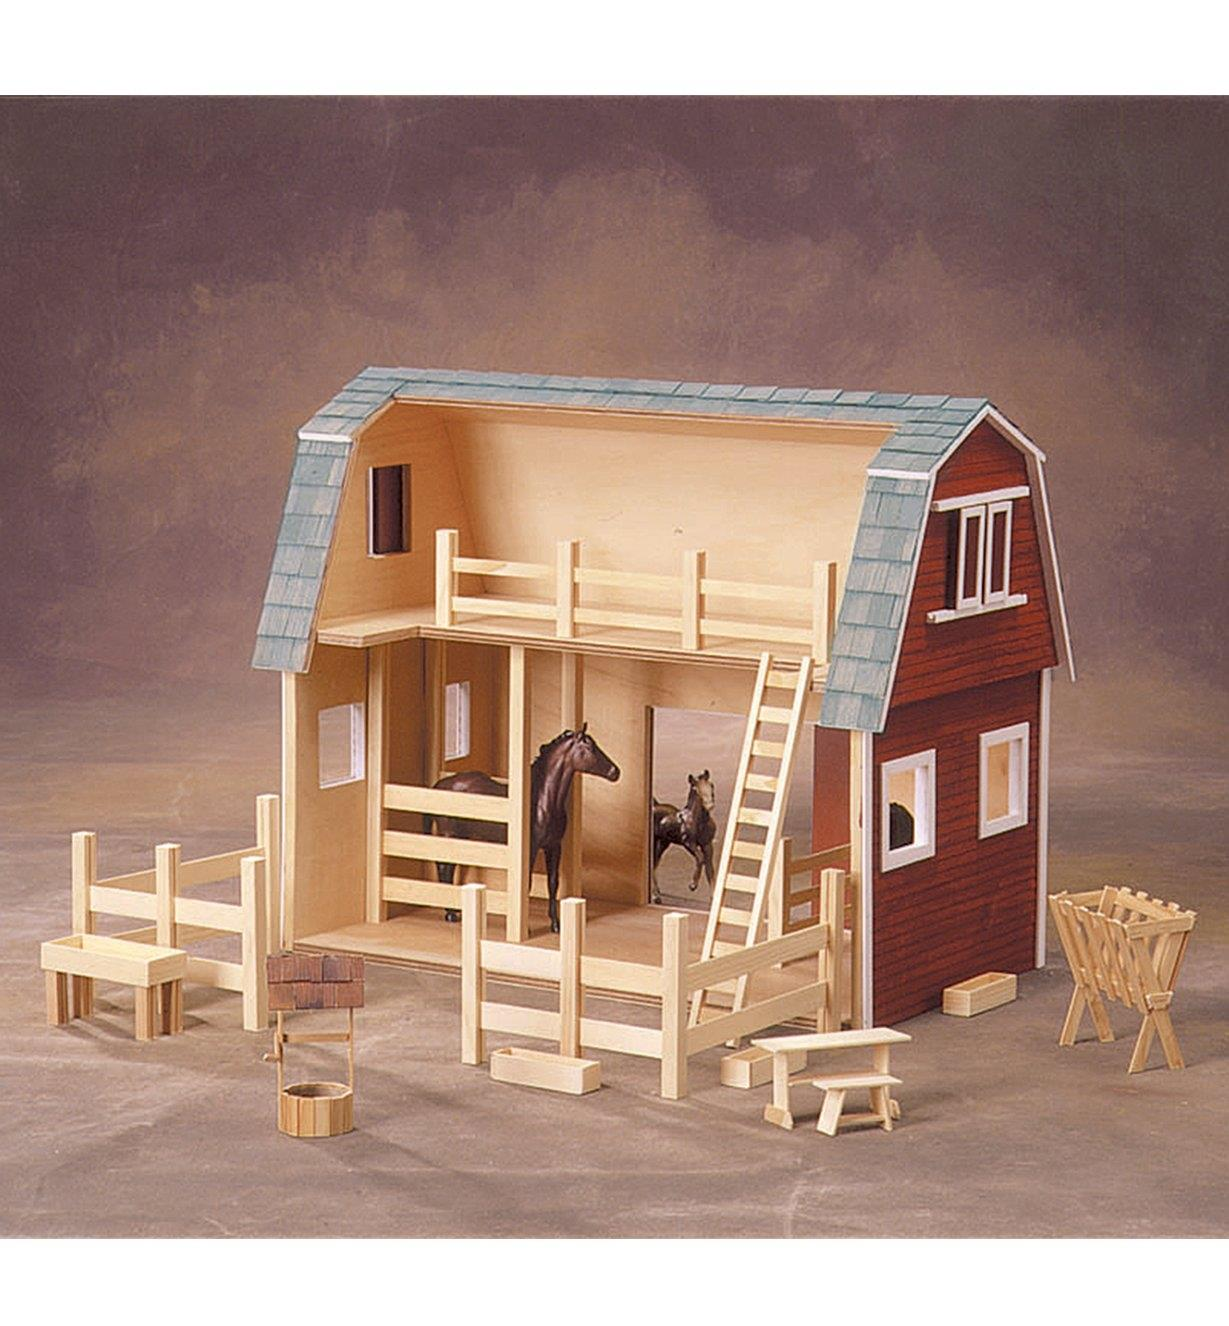 Interior view of the assembled Country Barn Deluxe Dollhouse Kit